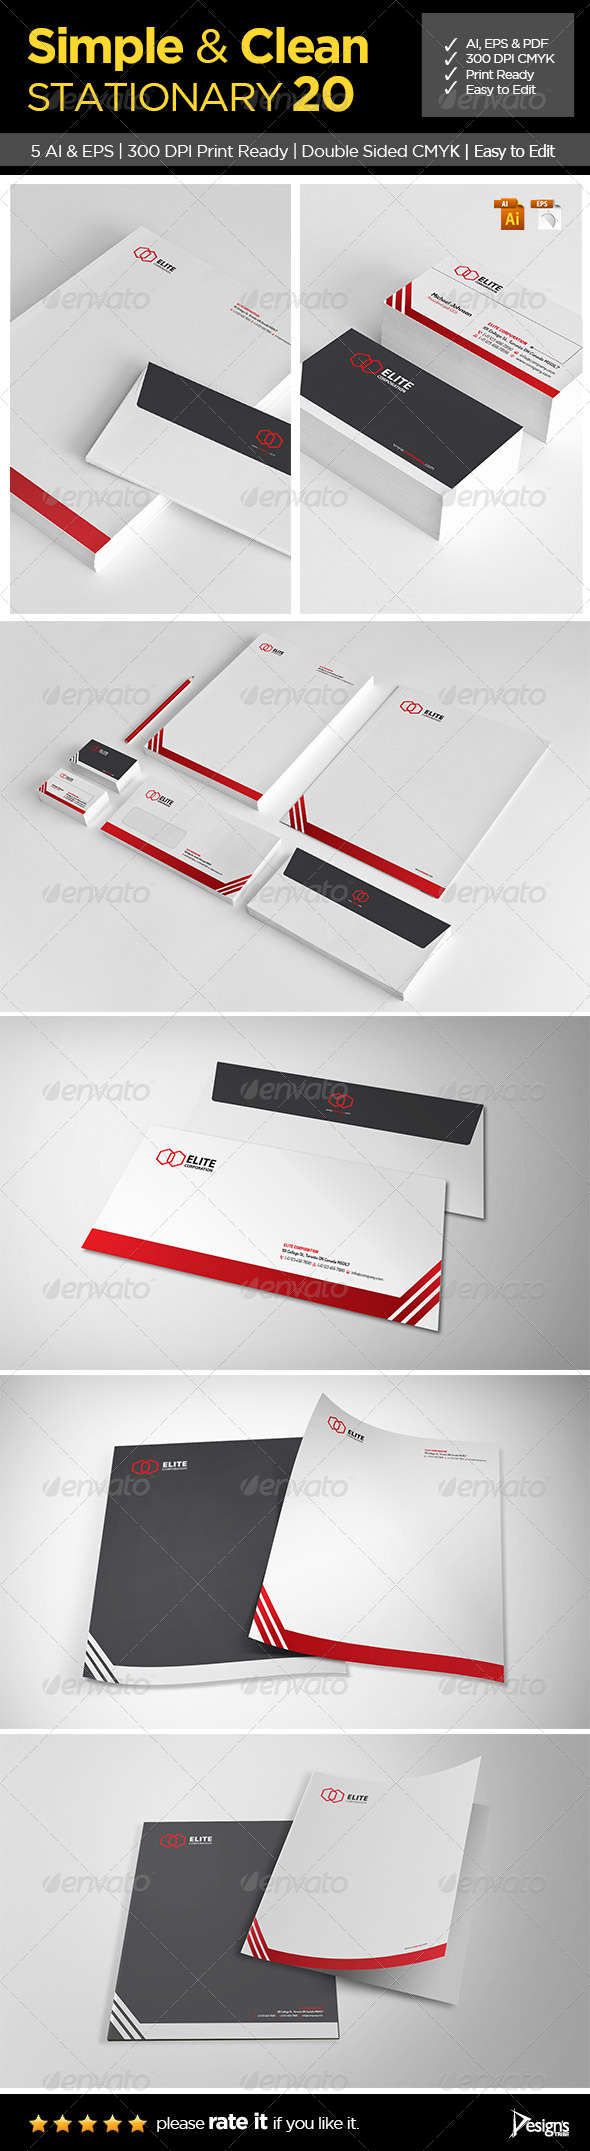 GraphicRiver Simple and Clean Stationary 20 6651901